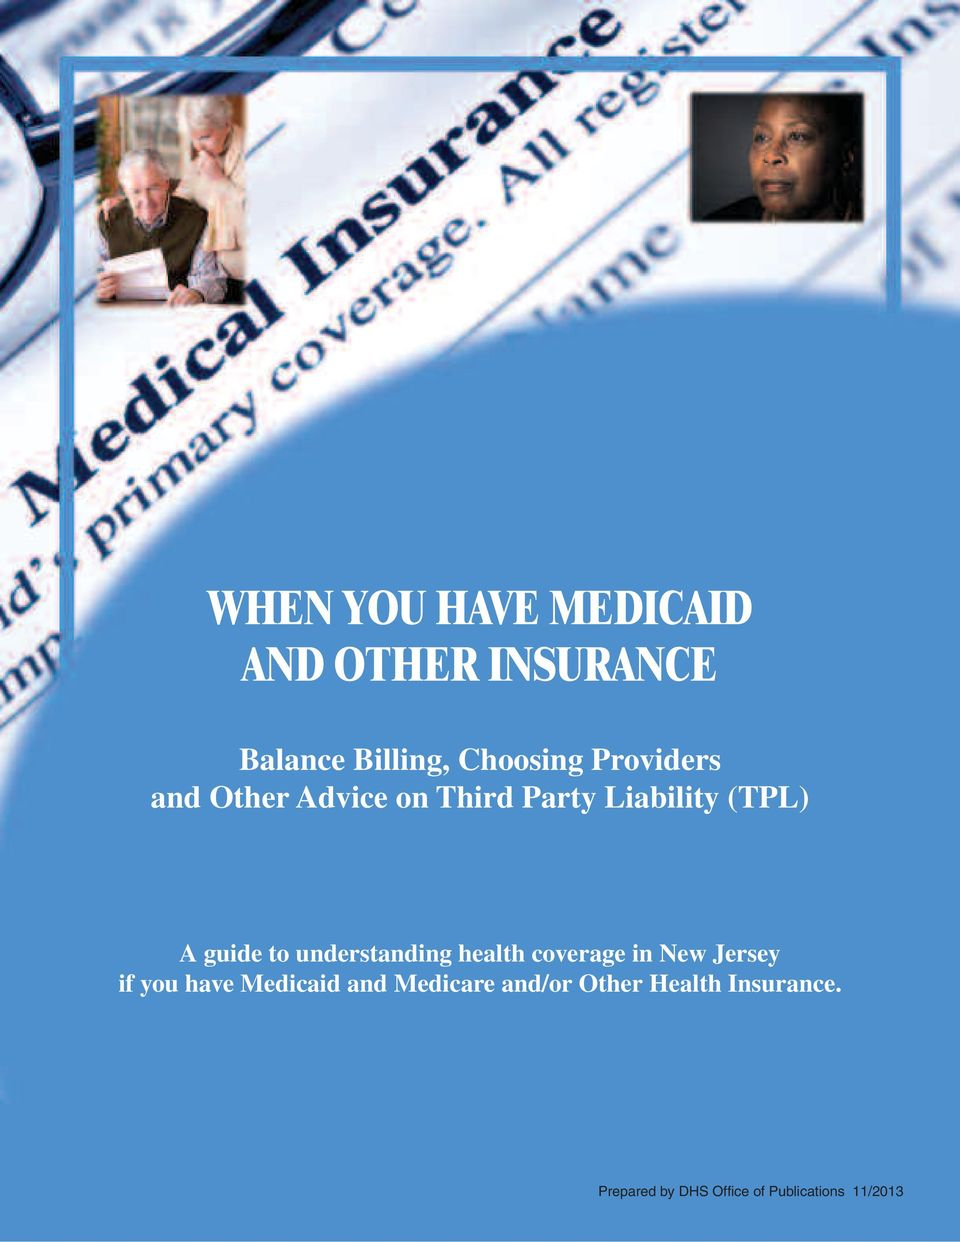 understanding health coverage in New Jersey if you have Medicaid and